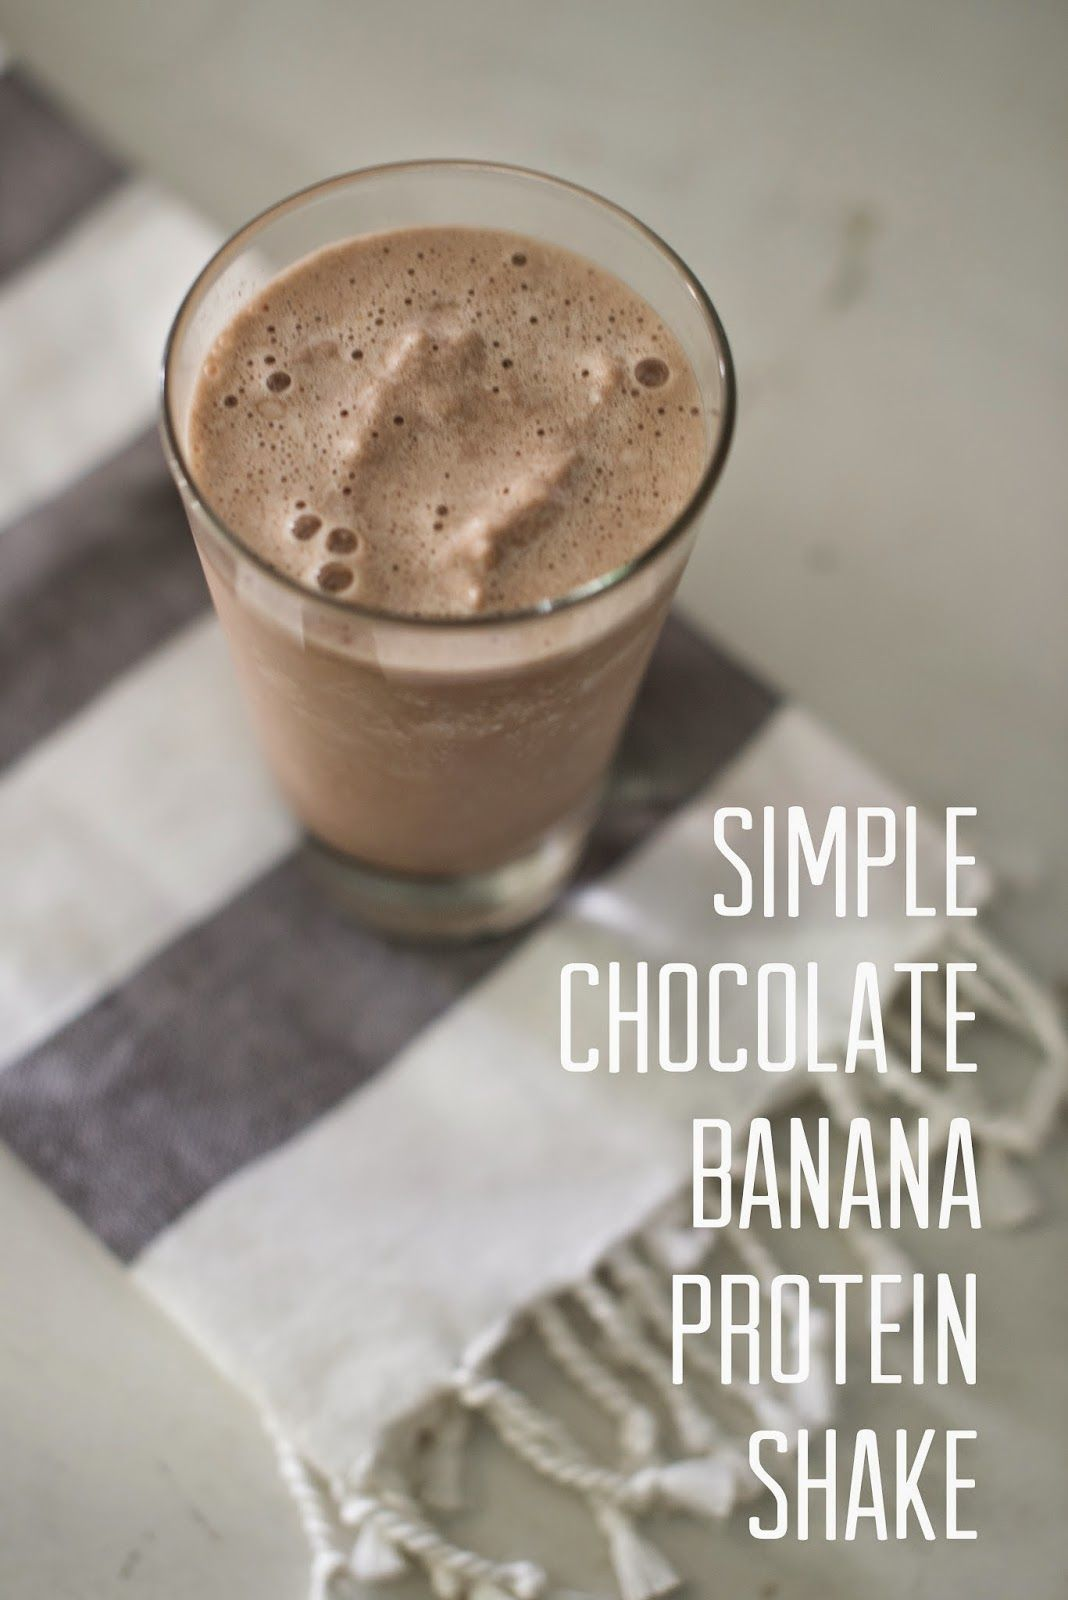 Simple Chocolate Banana Protein Shake